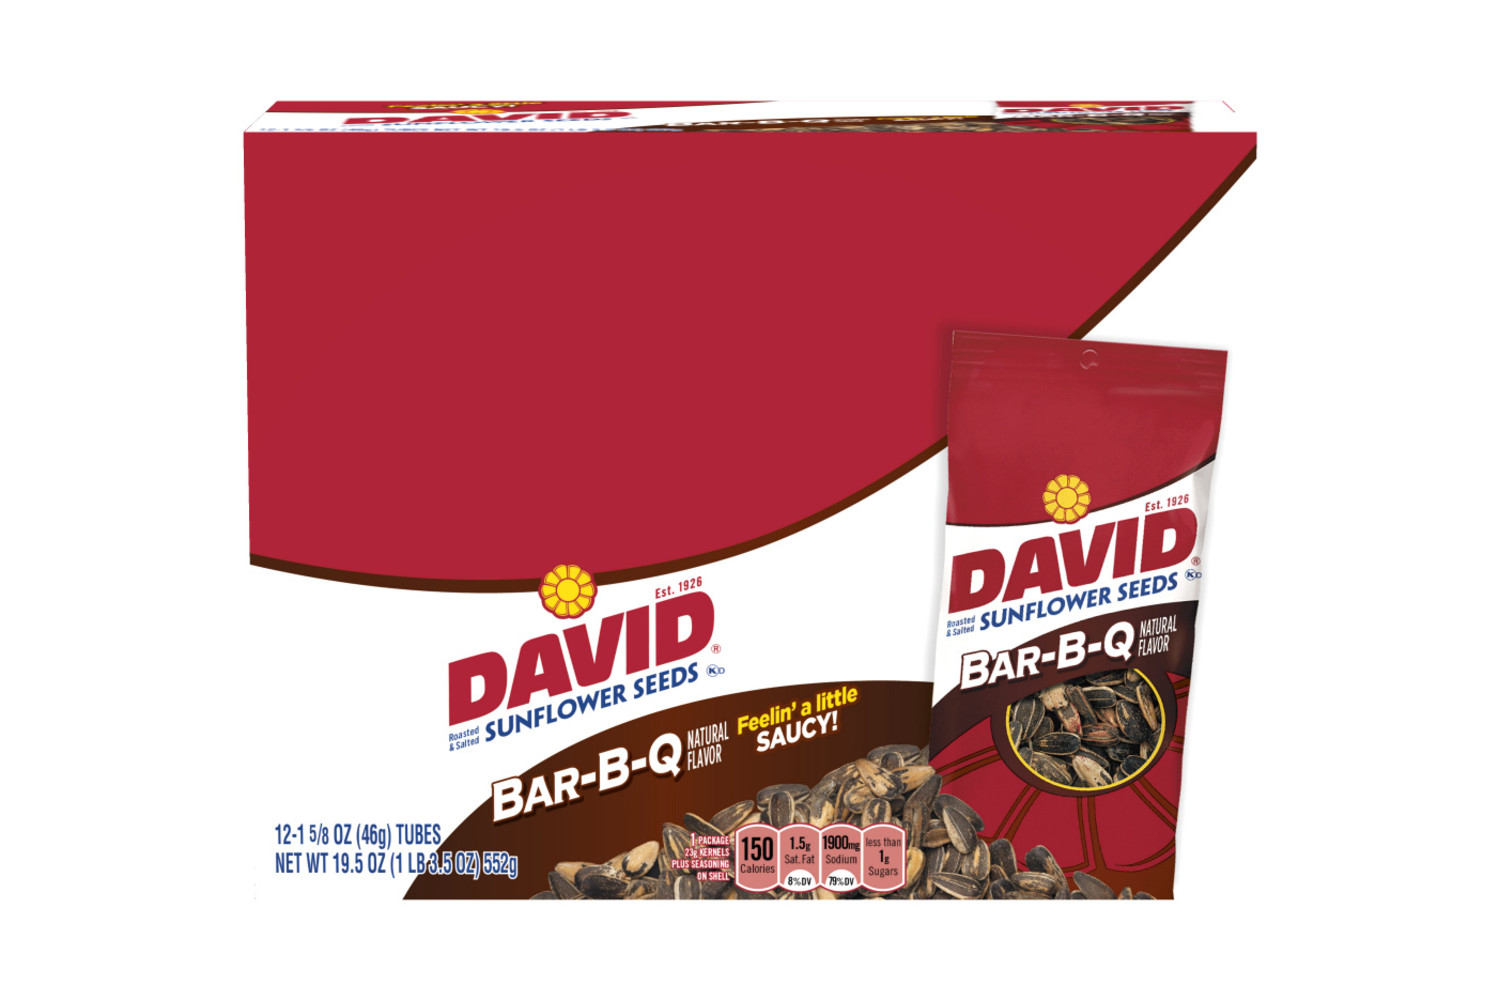 DAVID BBQ Sunflower Seeds